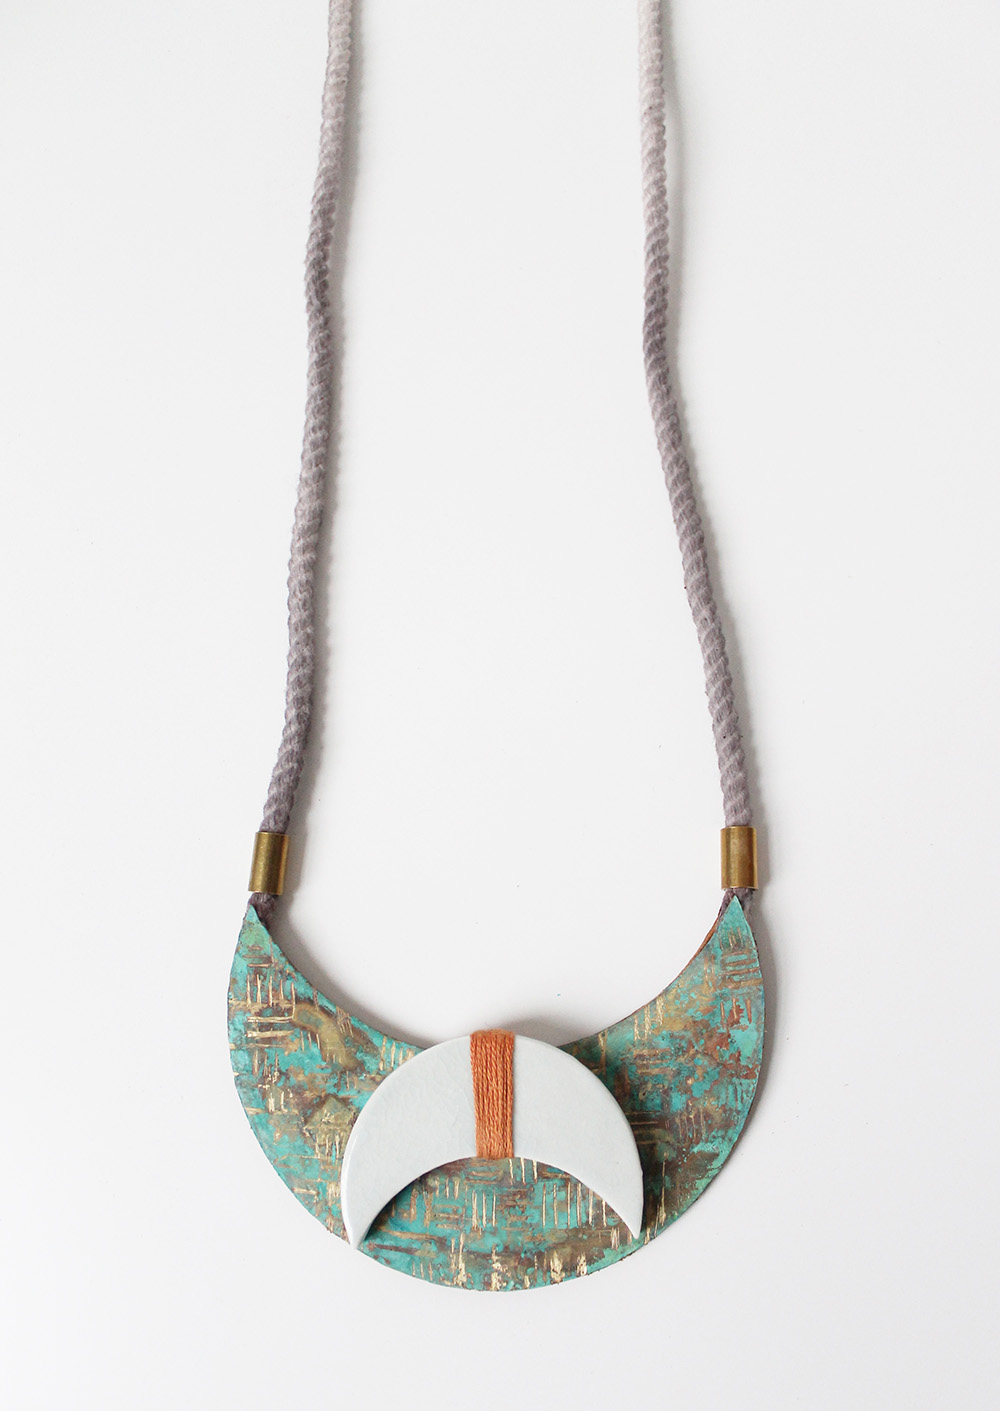 """Dusk Necklace"" – Janelle Gramling"